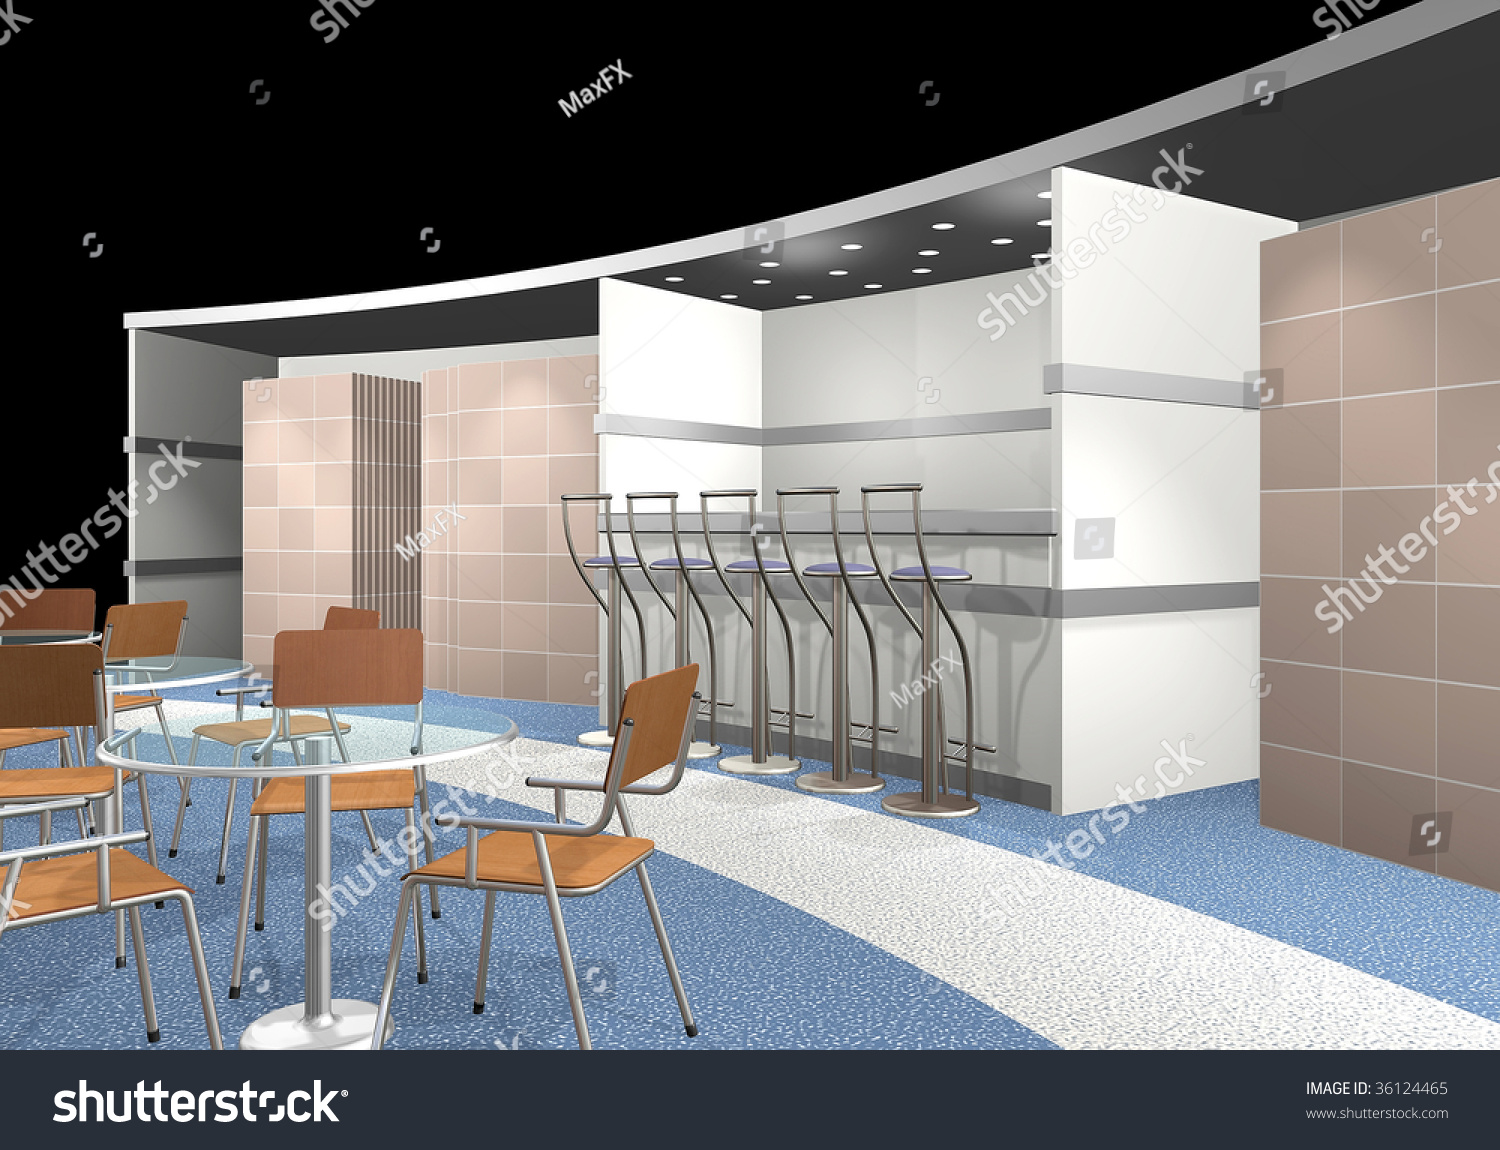 D Rendering Exhibition : D render of an exhibition area stock photo